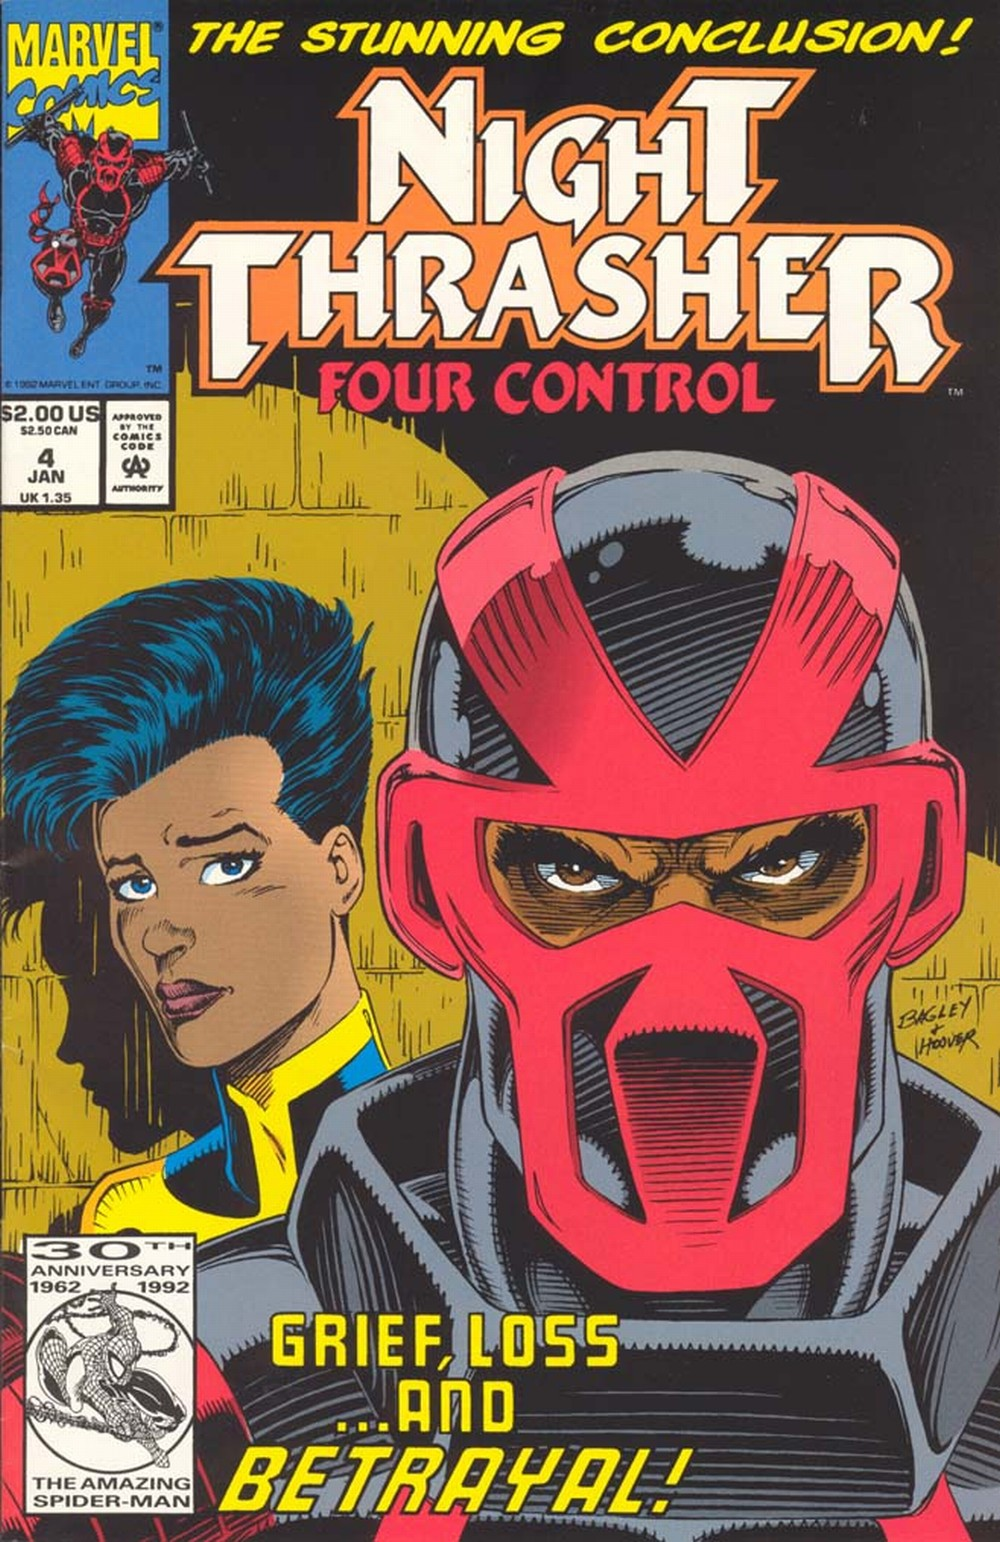 Night Thrasher- Four Control [Marvel] Mini 1 0004.jpg